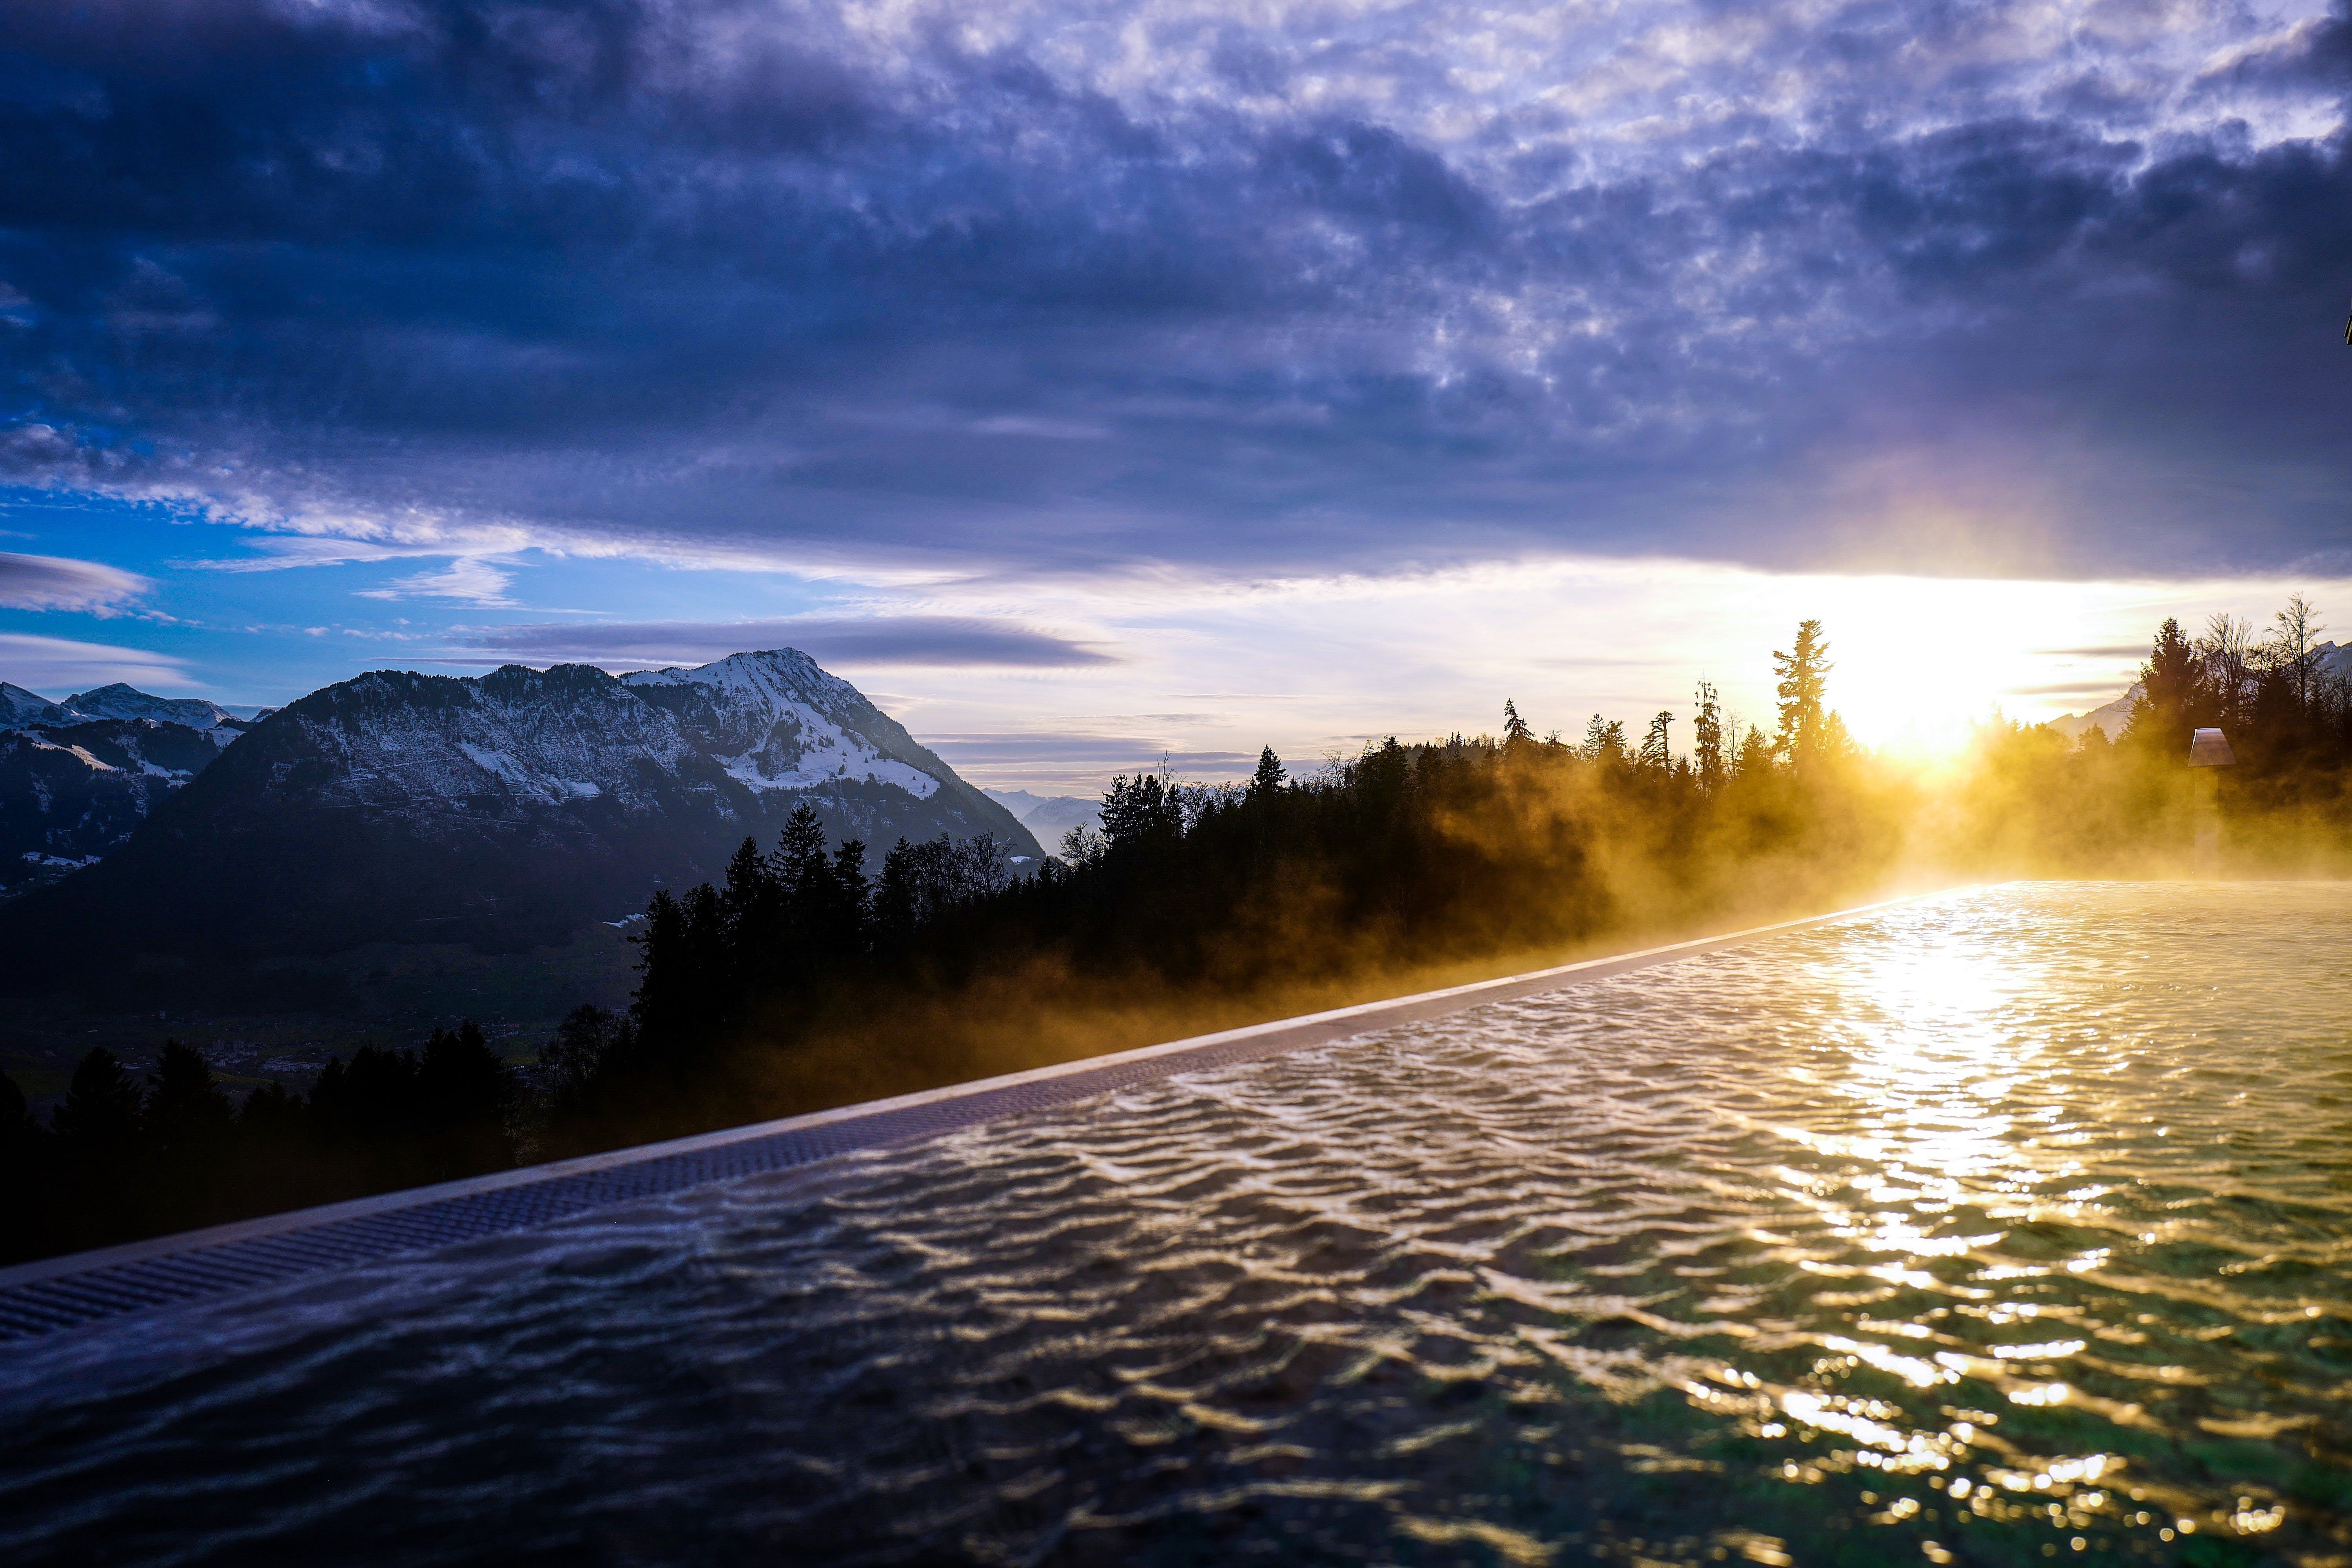 Infinity Pool Near the Forest during Golden Hour